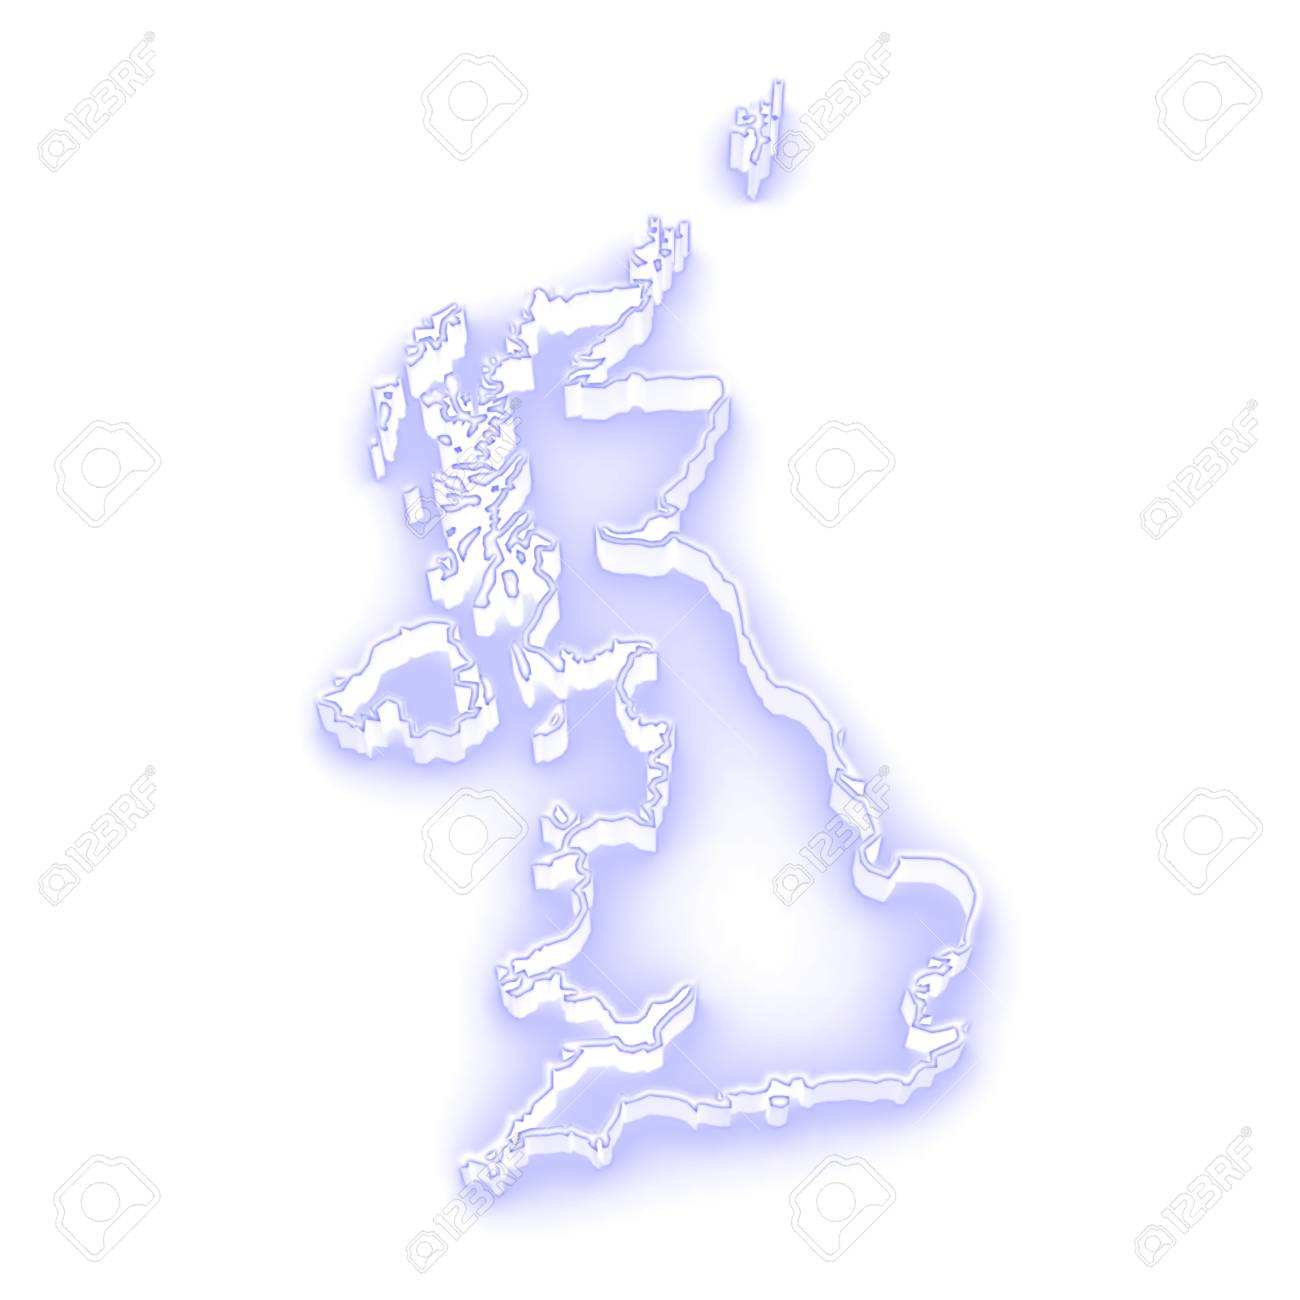 3d Map Of England.Three Dimensional Map Of England 3d